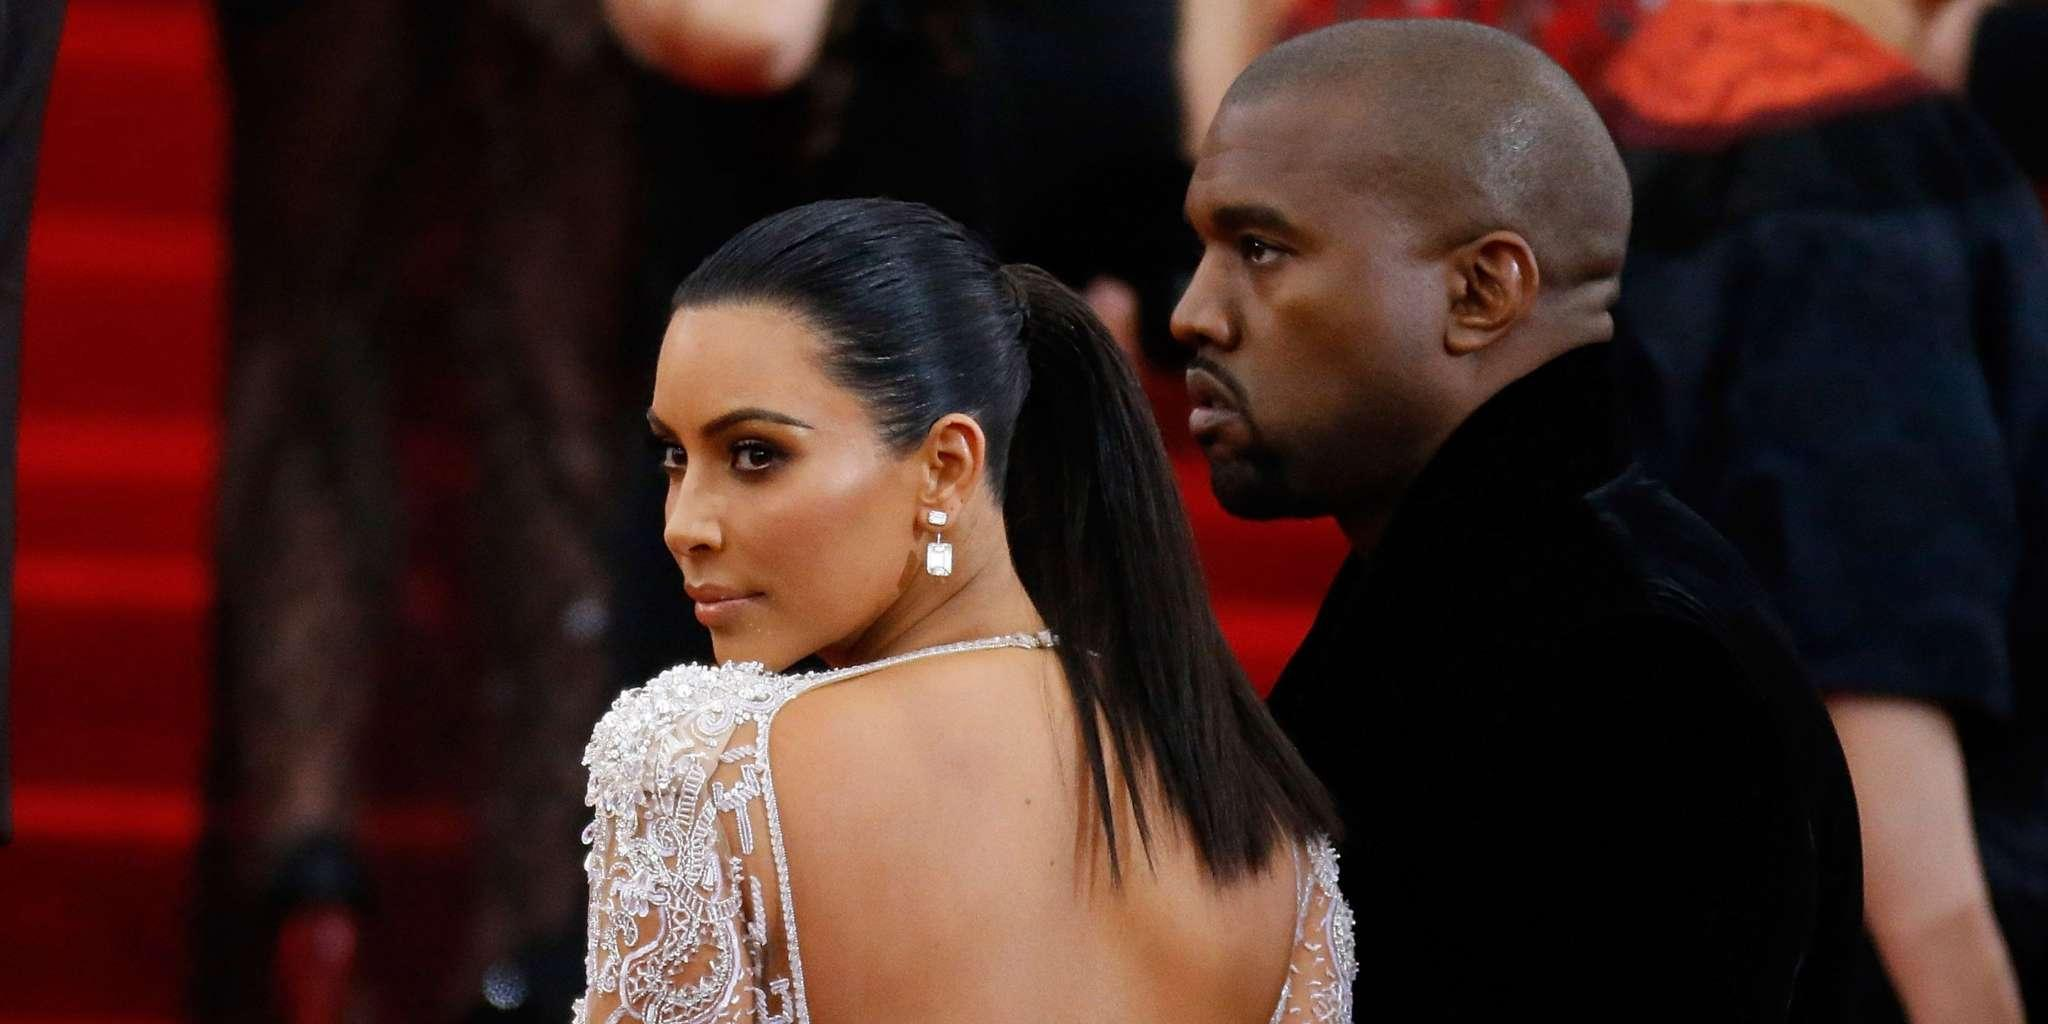 KUWTK: Kim Kardashian Going Through A 'Really Tough Time' Amid Husband Kanye West's 'Embarrassing' Social Media Rants - Here's Why!